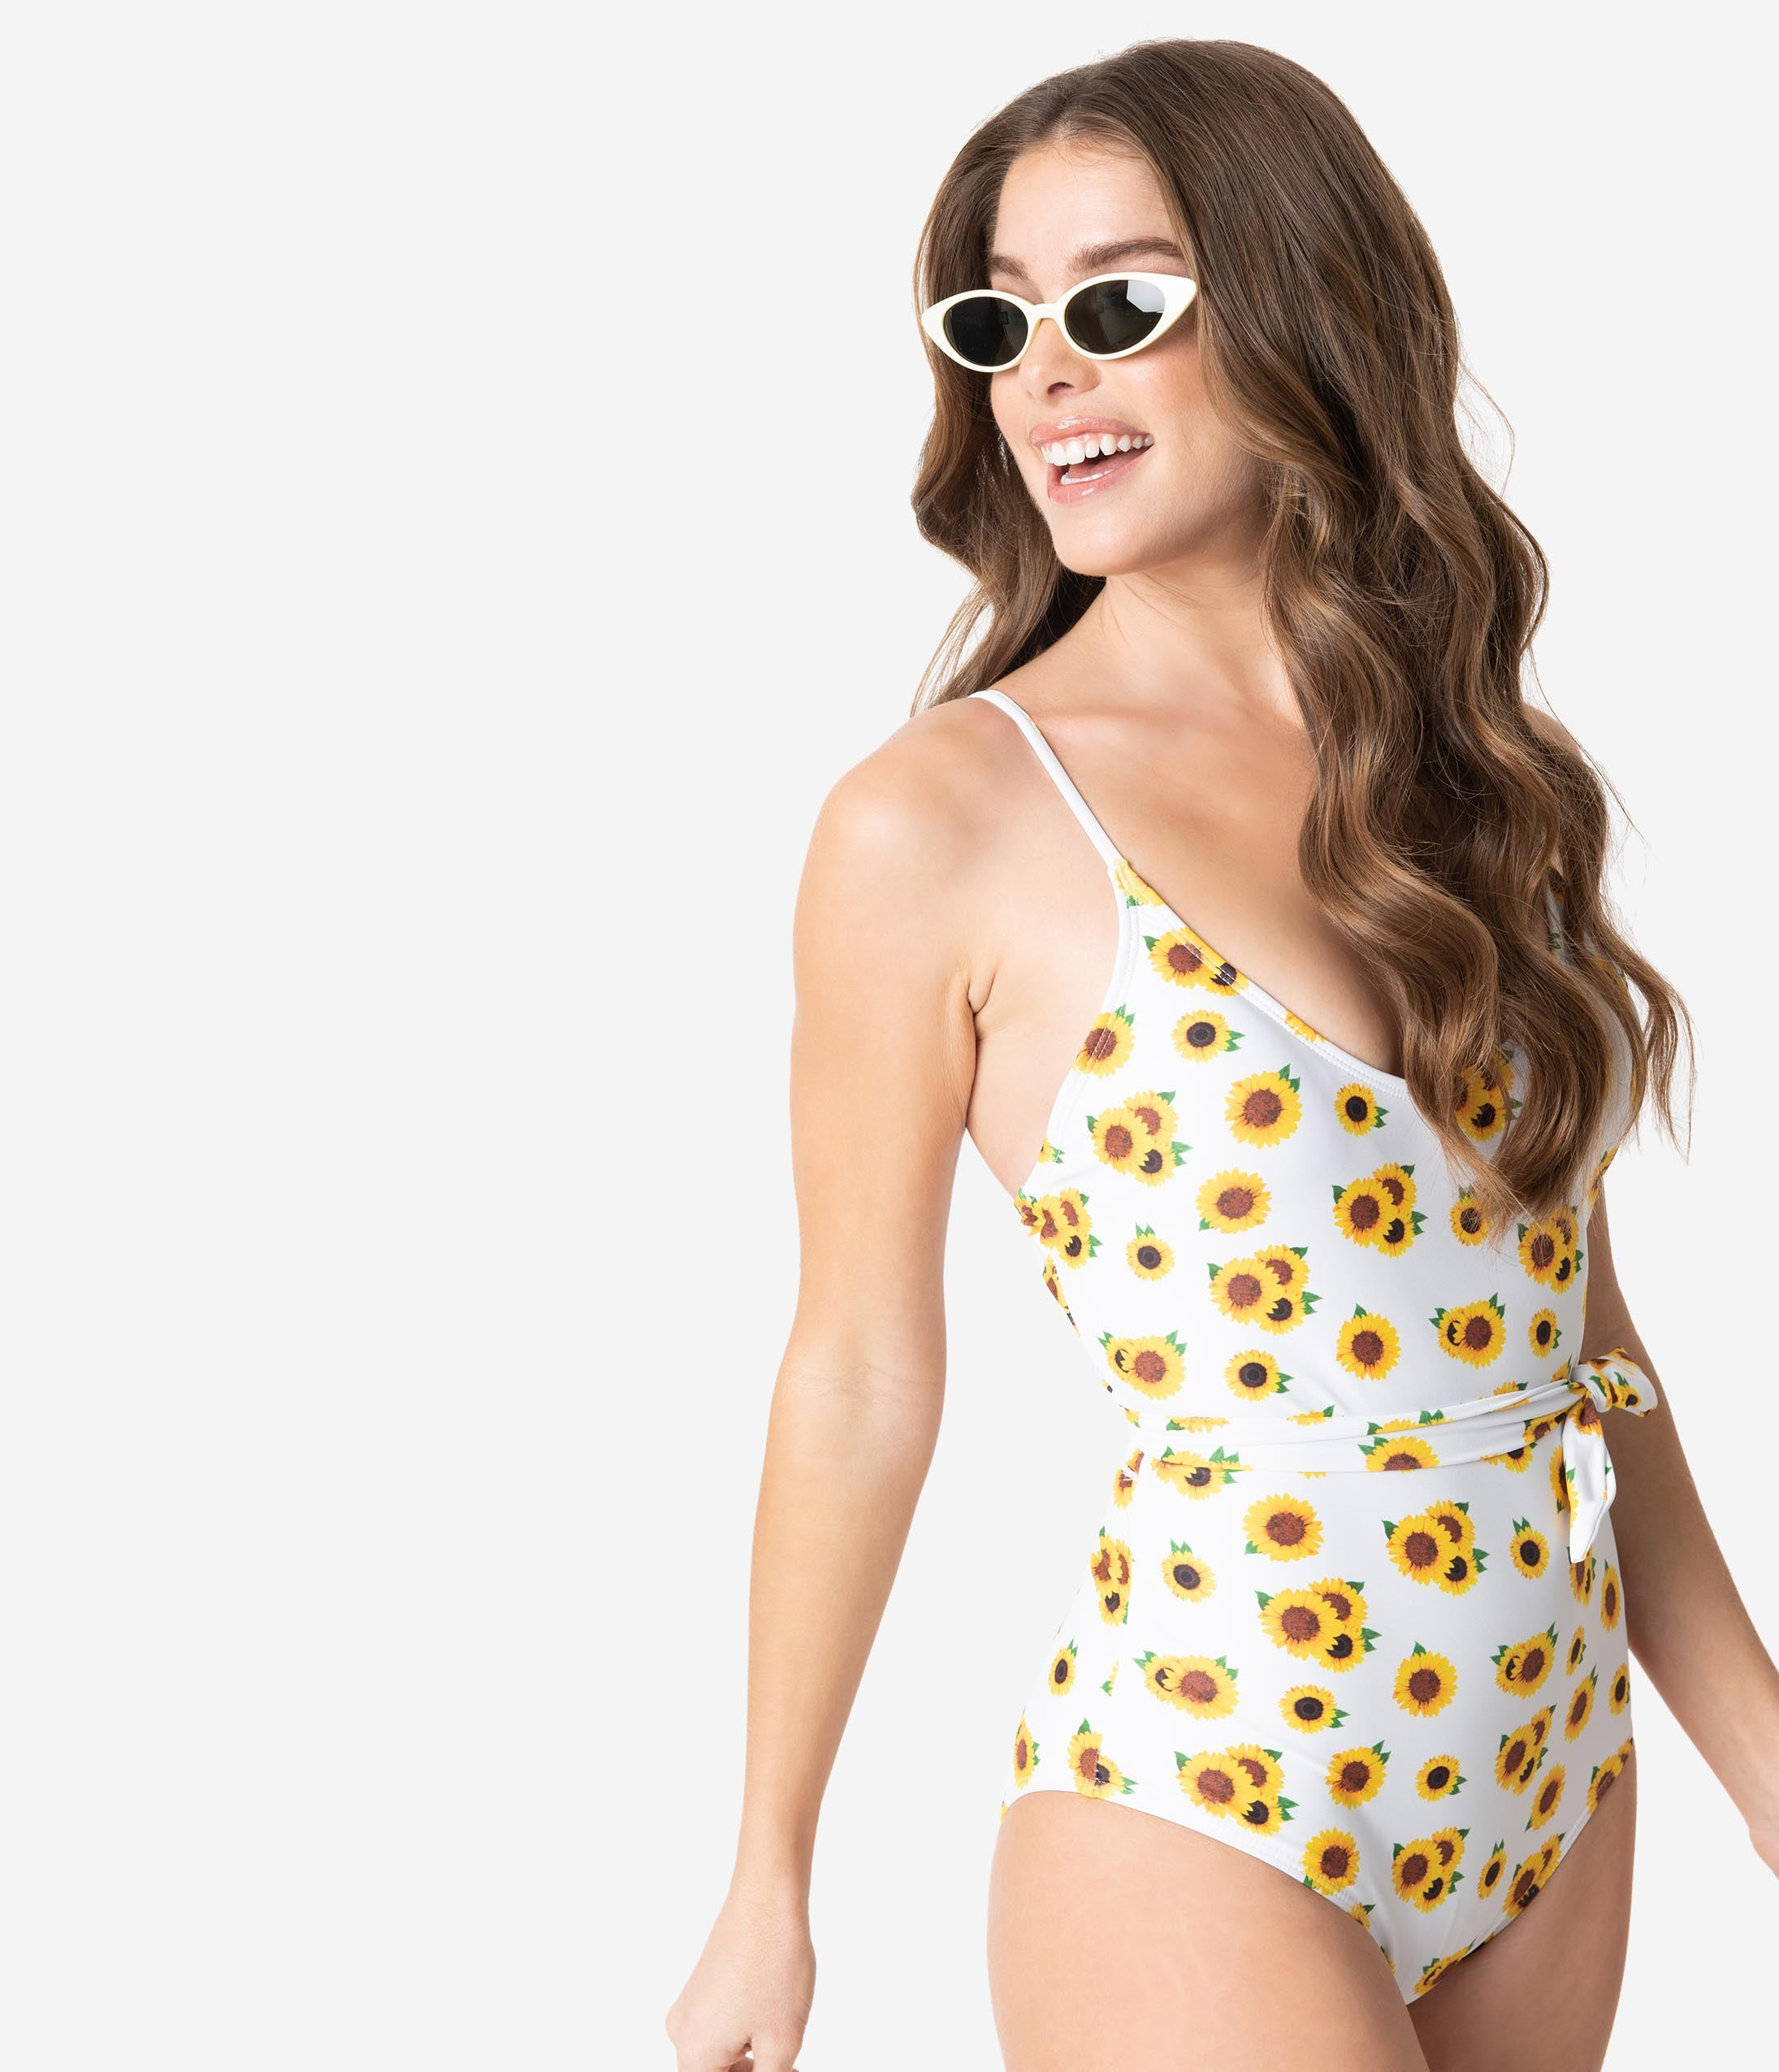 60s Mod Clothing Outfit Ideas Kingdom  State White  Yellow Floral Bow Tie One Piece Swimsuit $74.00 AT vintagedancer.com